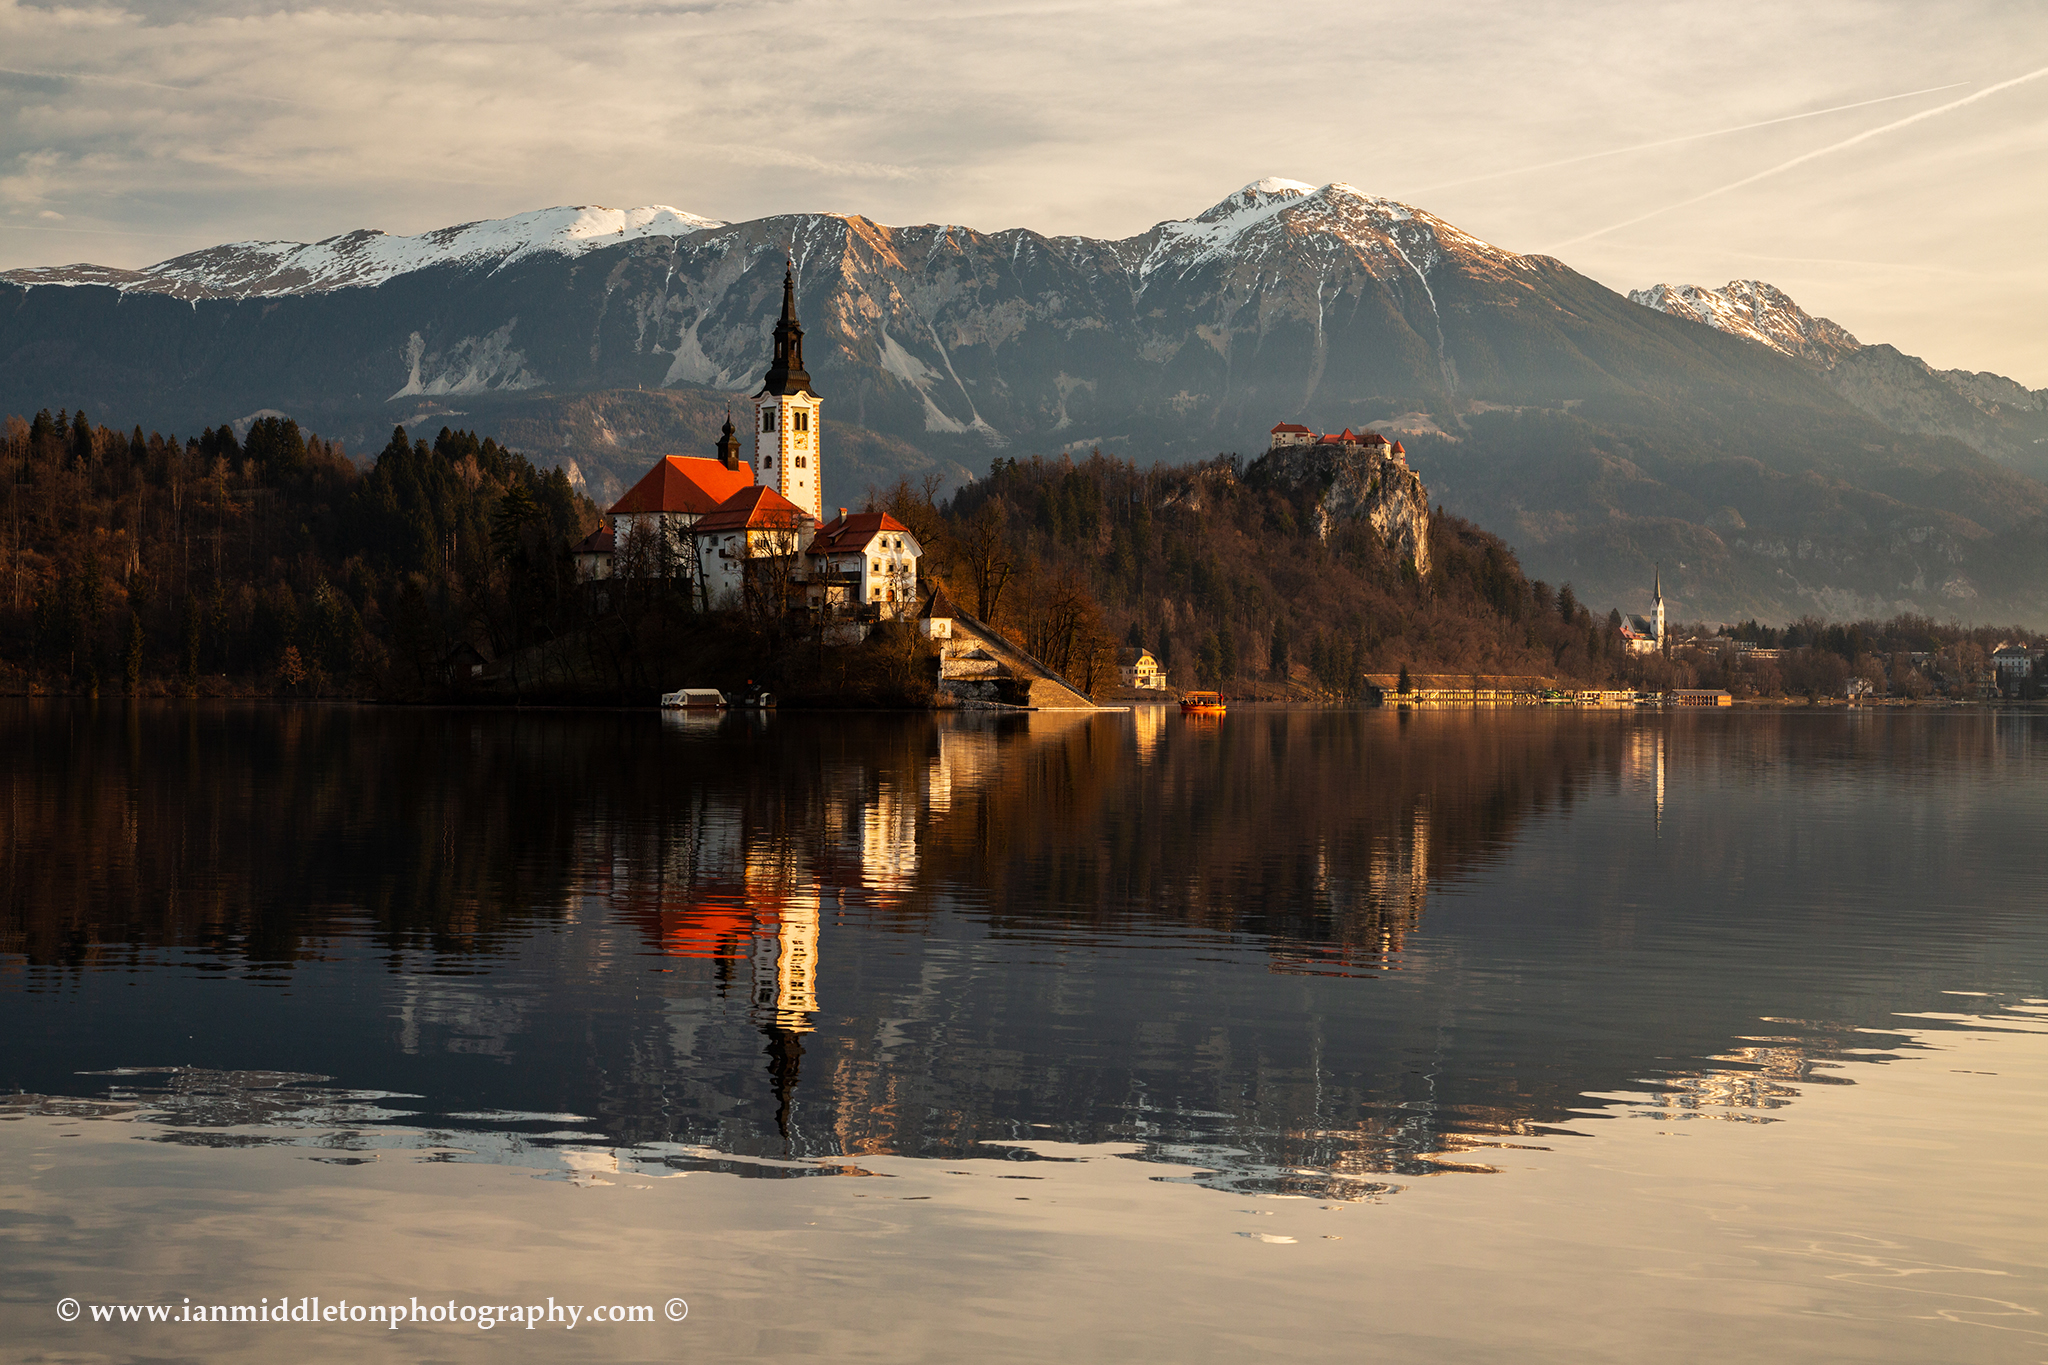 Morning at Lake Bled and the island church of the assumption of Mary with the Karavanke mountains in the background, Slovenia.